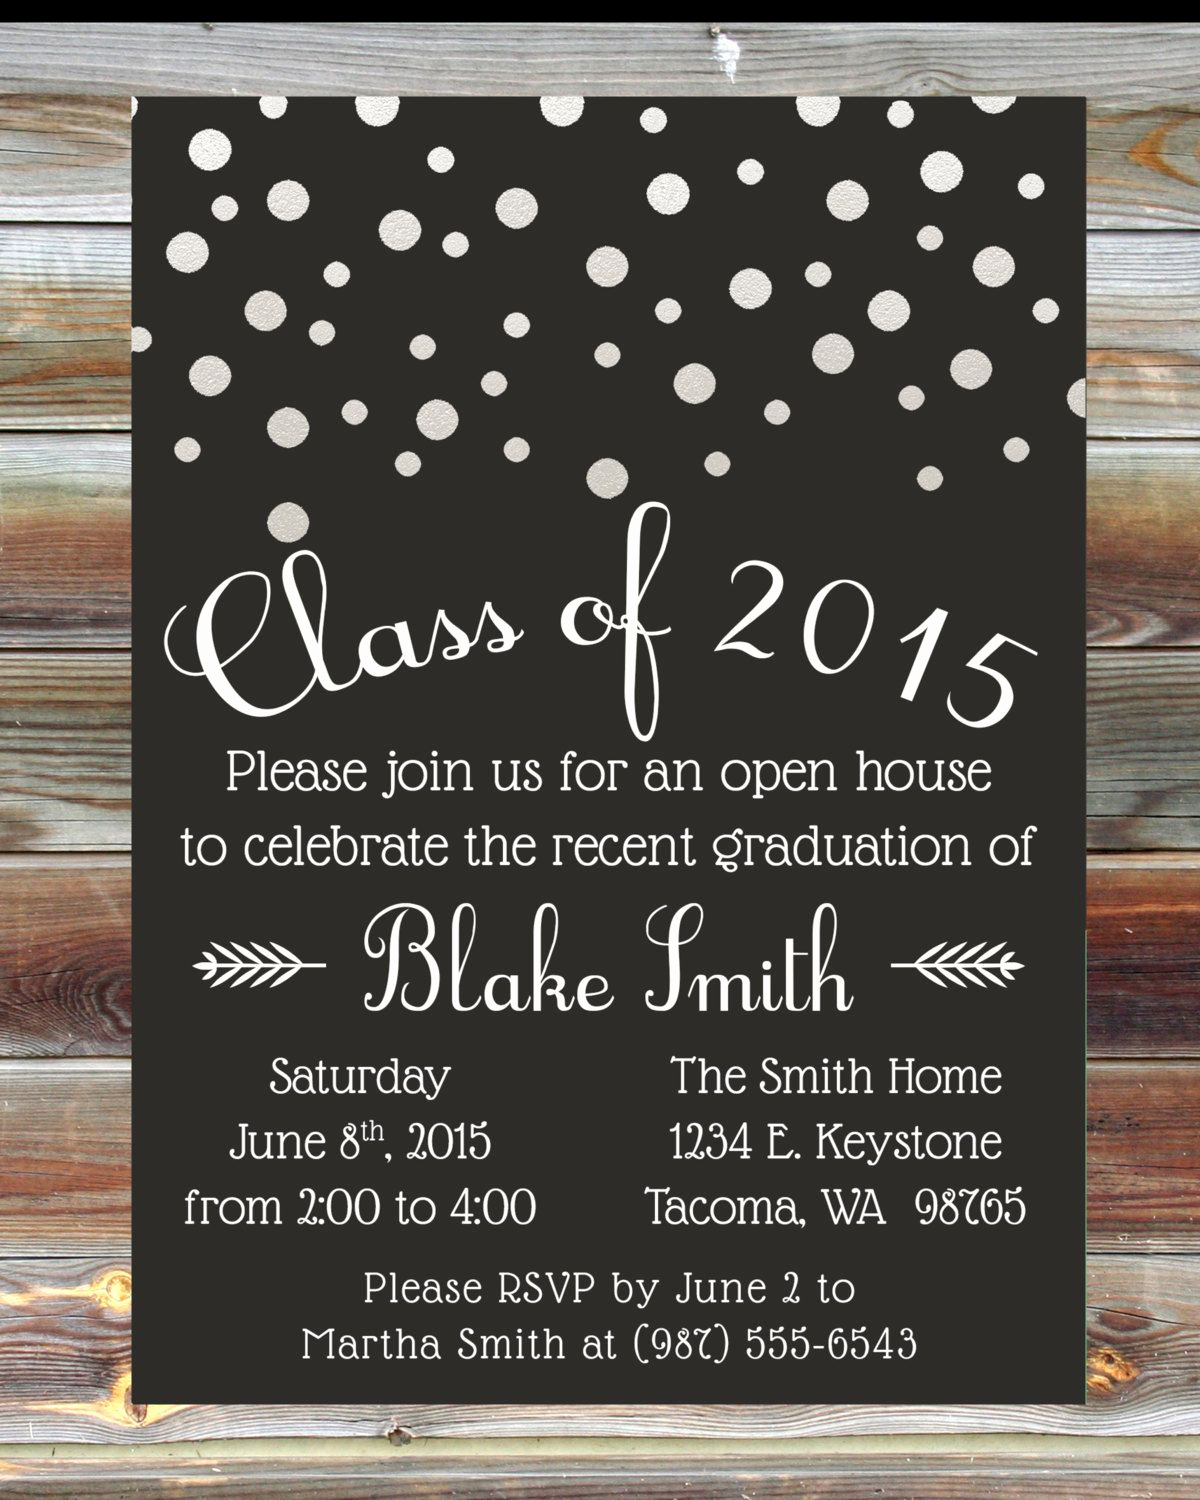 Invitation Inserts for Graduation Party Lovely Custom Color Graduation Open House Invitation Champagne